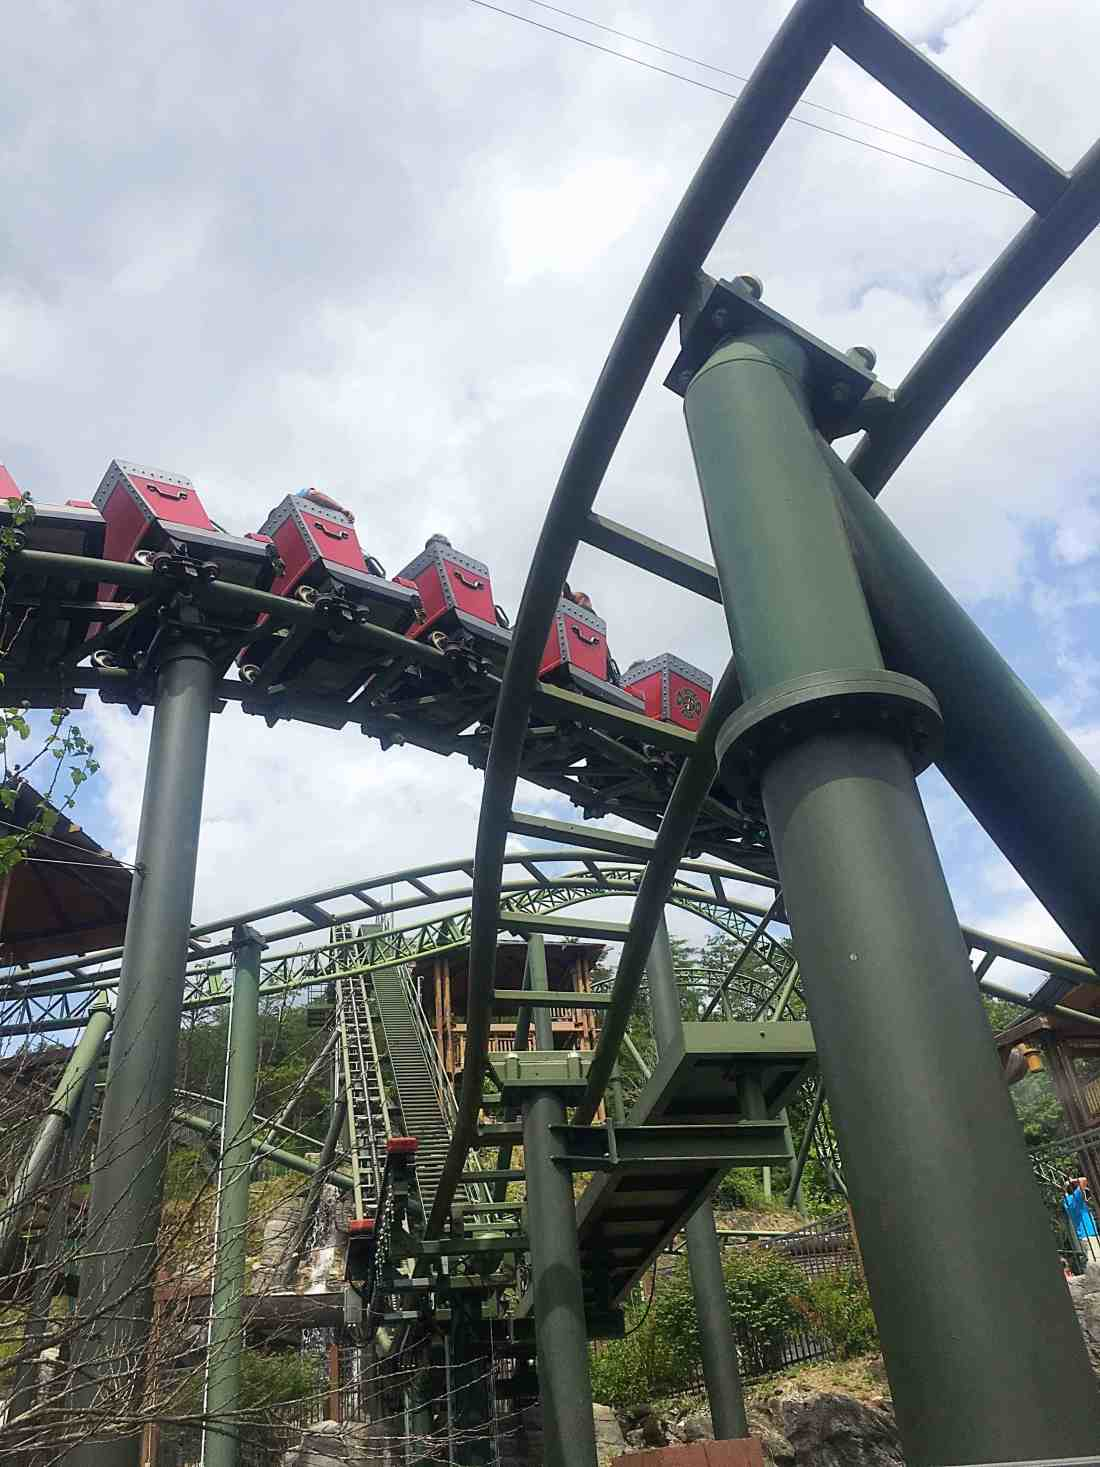 Planning a trip to Pigeon Forge, TN? Then you'll want to check out my full vacation guide on Family Fun at Dollywood and The Island Pigeon Forge, with super helpful tips on what to see and do. These two Pigeon Forge attractions are sure to make the entire family happy with fun rollercoasters, rides for kids, restaurants, shops, music, and more! #travel #familytravel #pigeonforge #tennessee #southerntravel #greatsmokymountains #gatlinburg #theislandpigeonforge